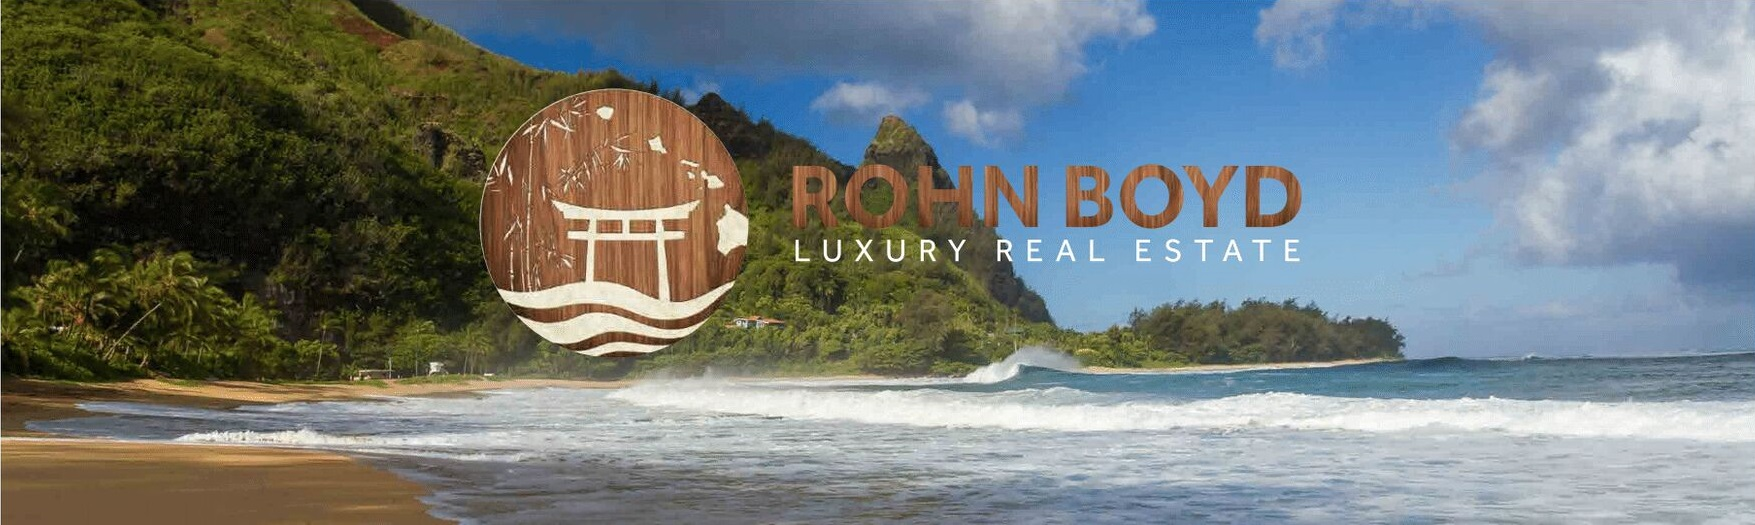 Rohn Boyd Luxury Real Estate